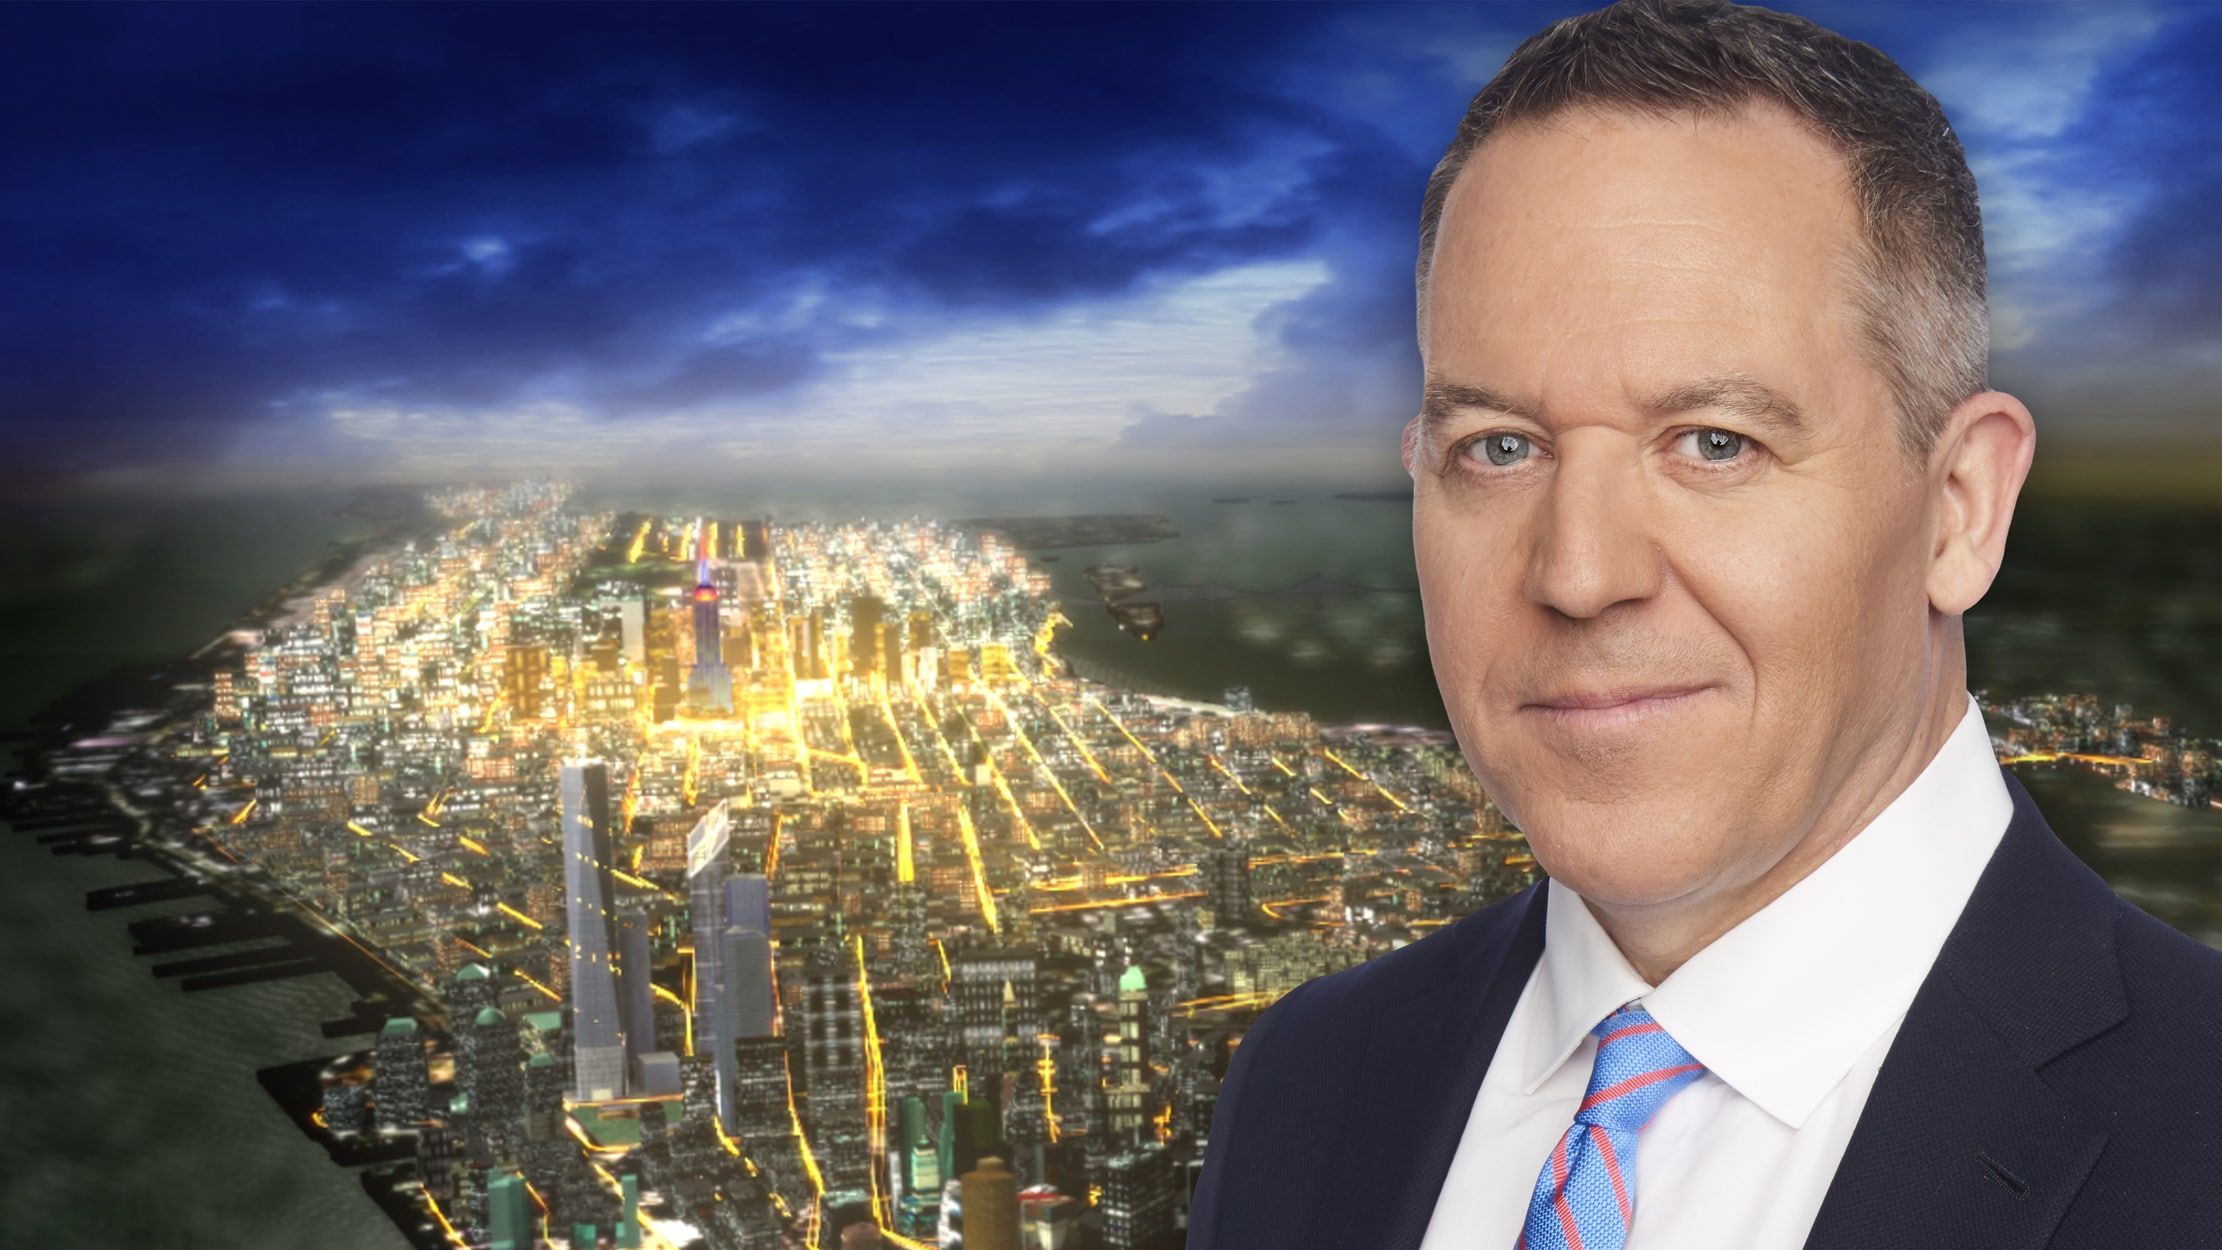 The Greg Gutfeld Show seriesDetail